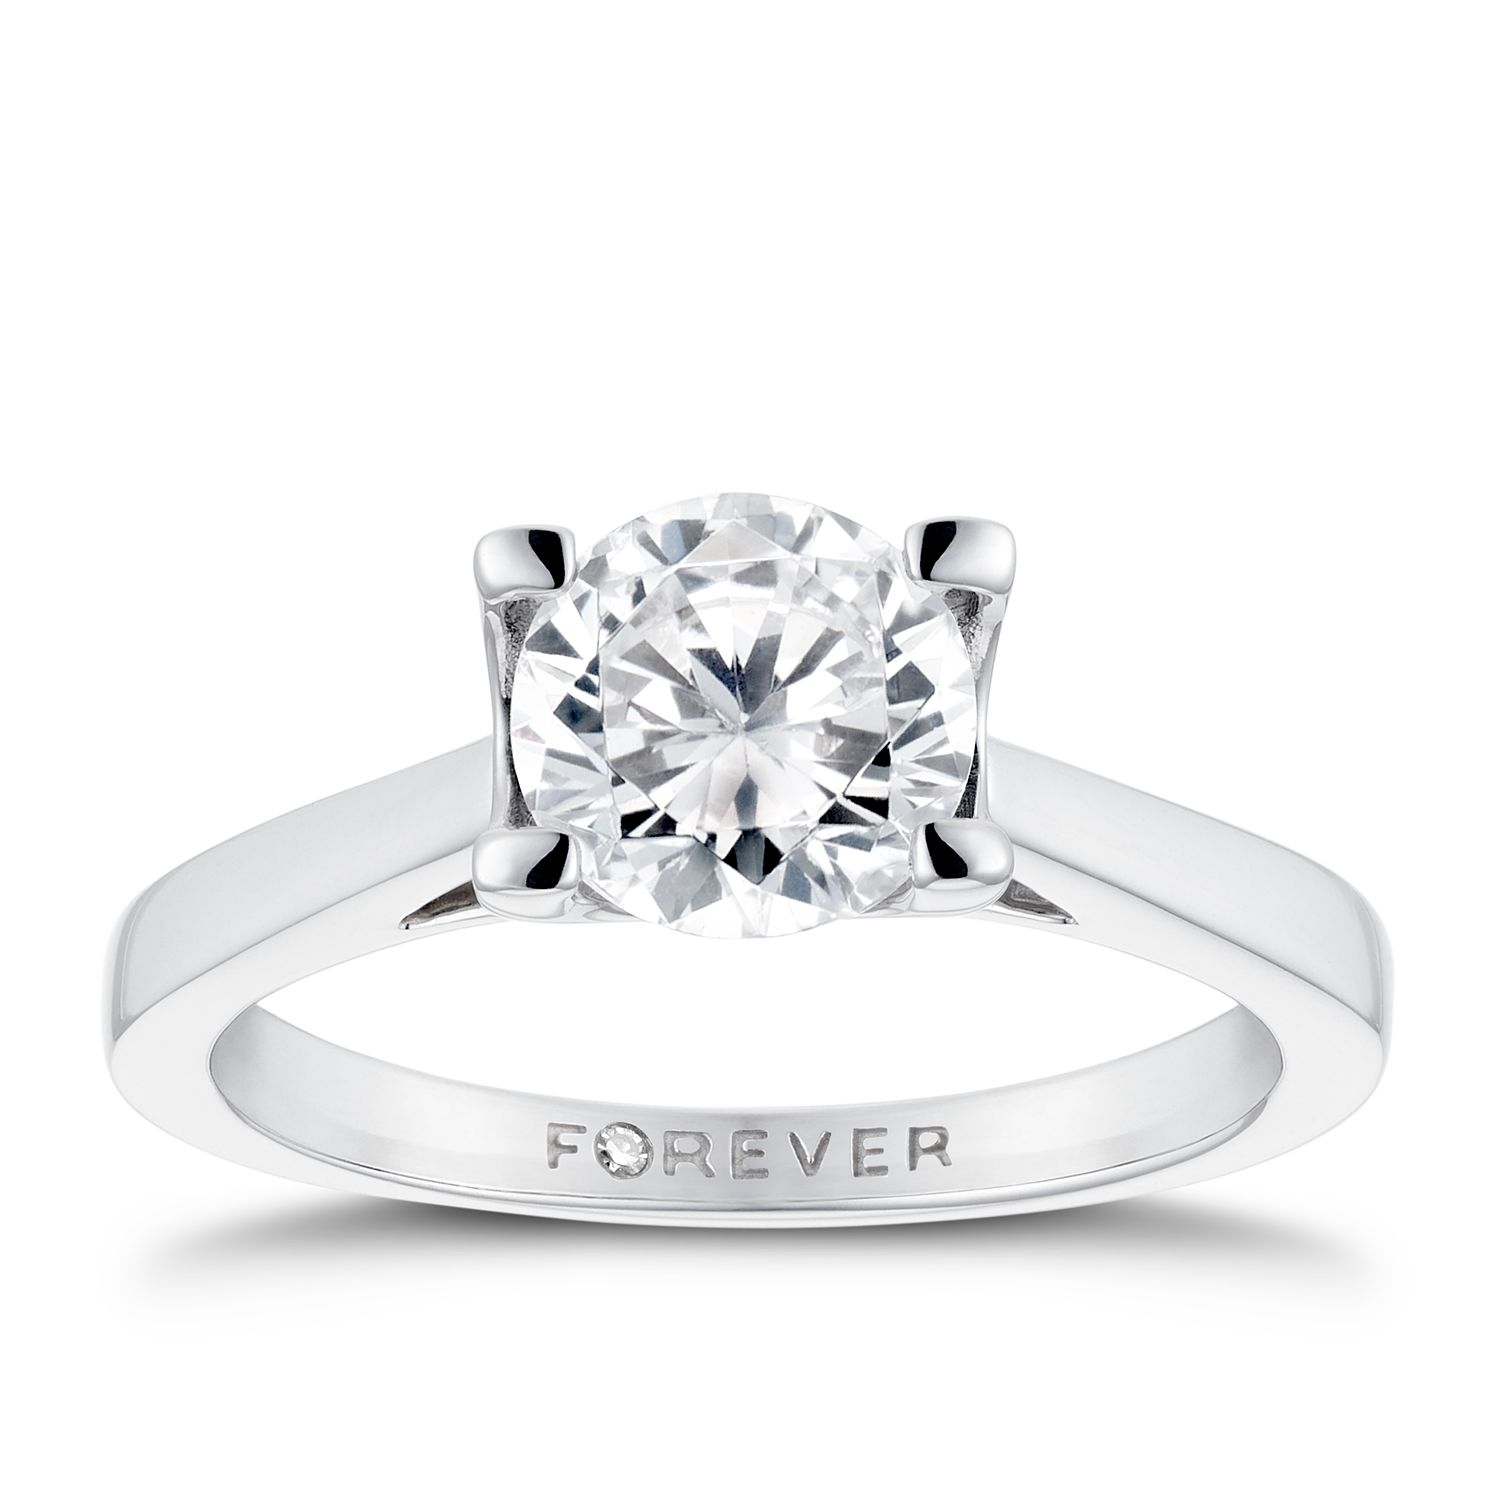 The Forever Diamond 18ct White Gold 1.25ct Ring - Product number 2776928